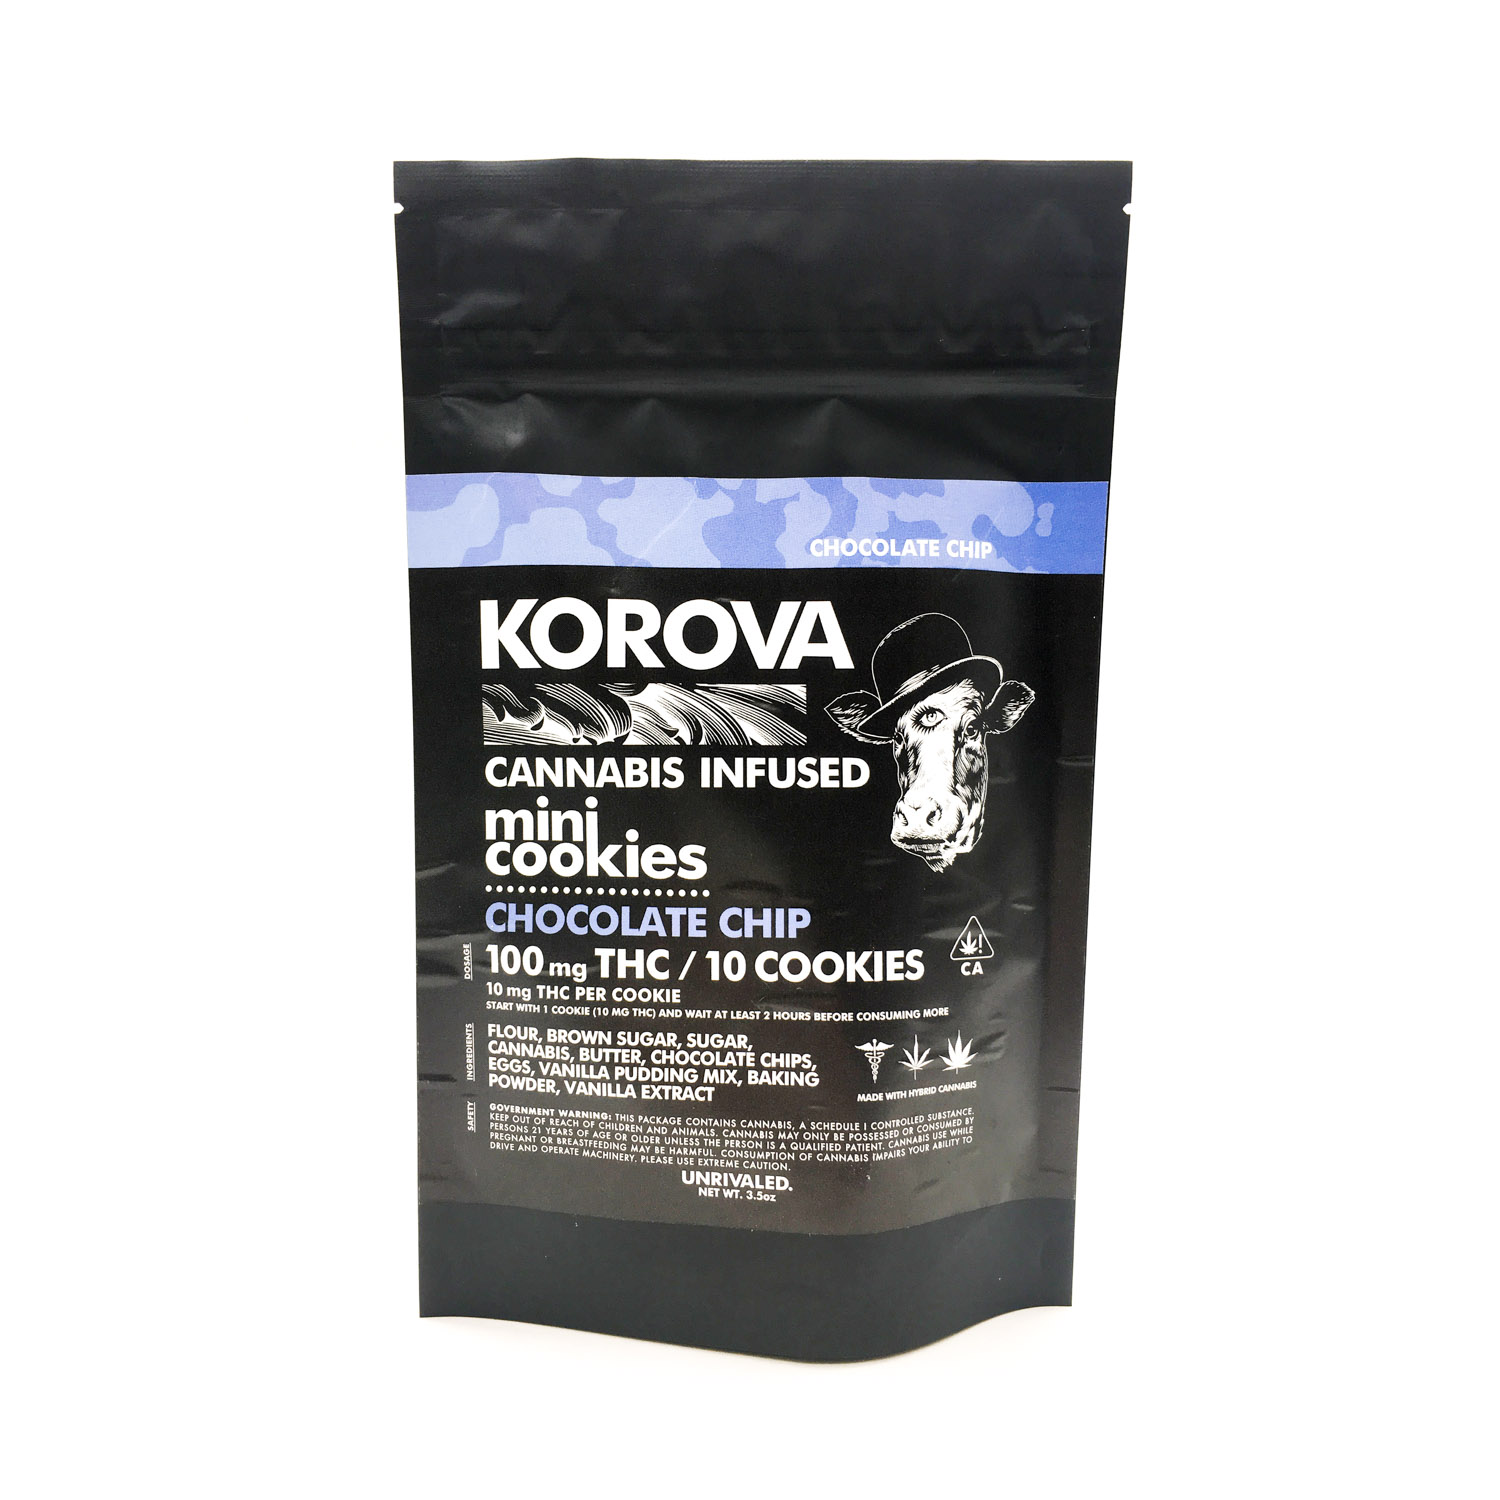 Right now all Korova products are Buy One Get One 50% off!